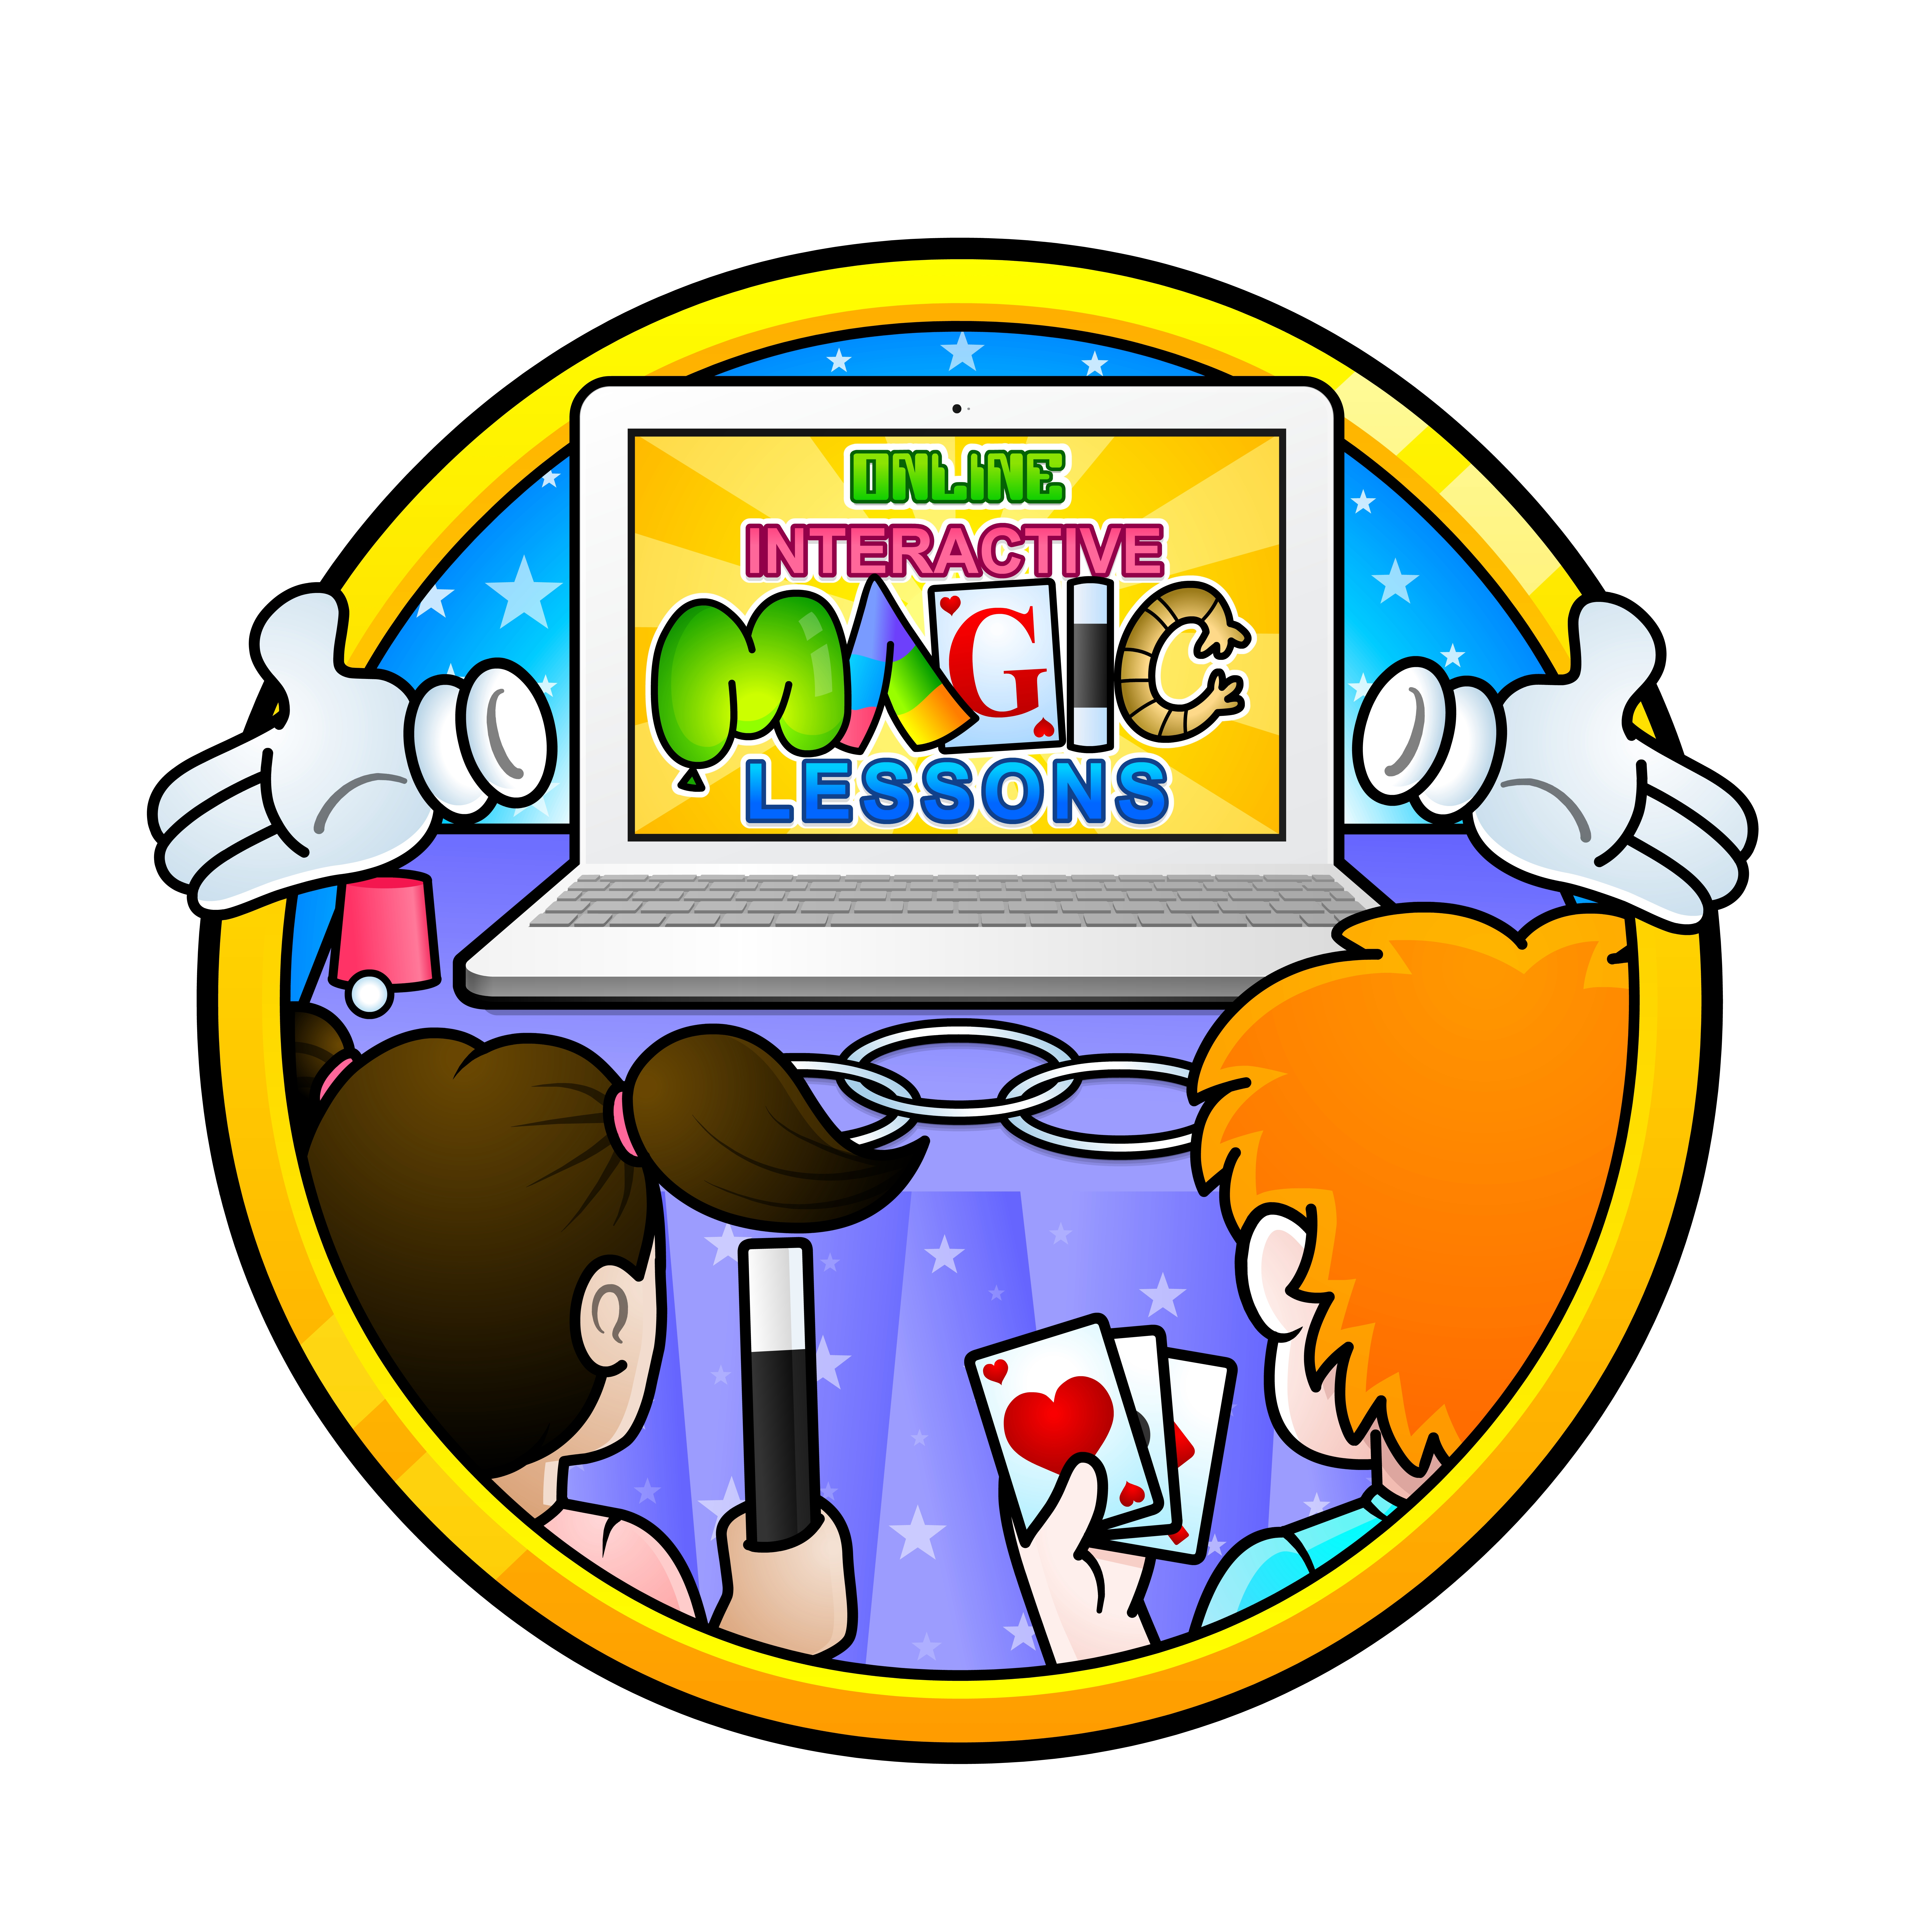 Online Interactive Magic Lessons for kids, the perfect treat for a Birthday or just for any child aged between 8-12 years old looking for something fun to do